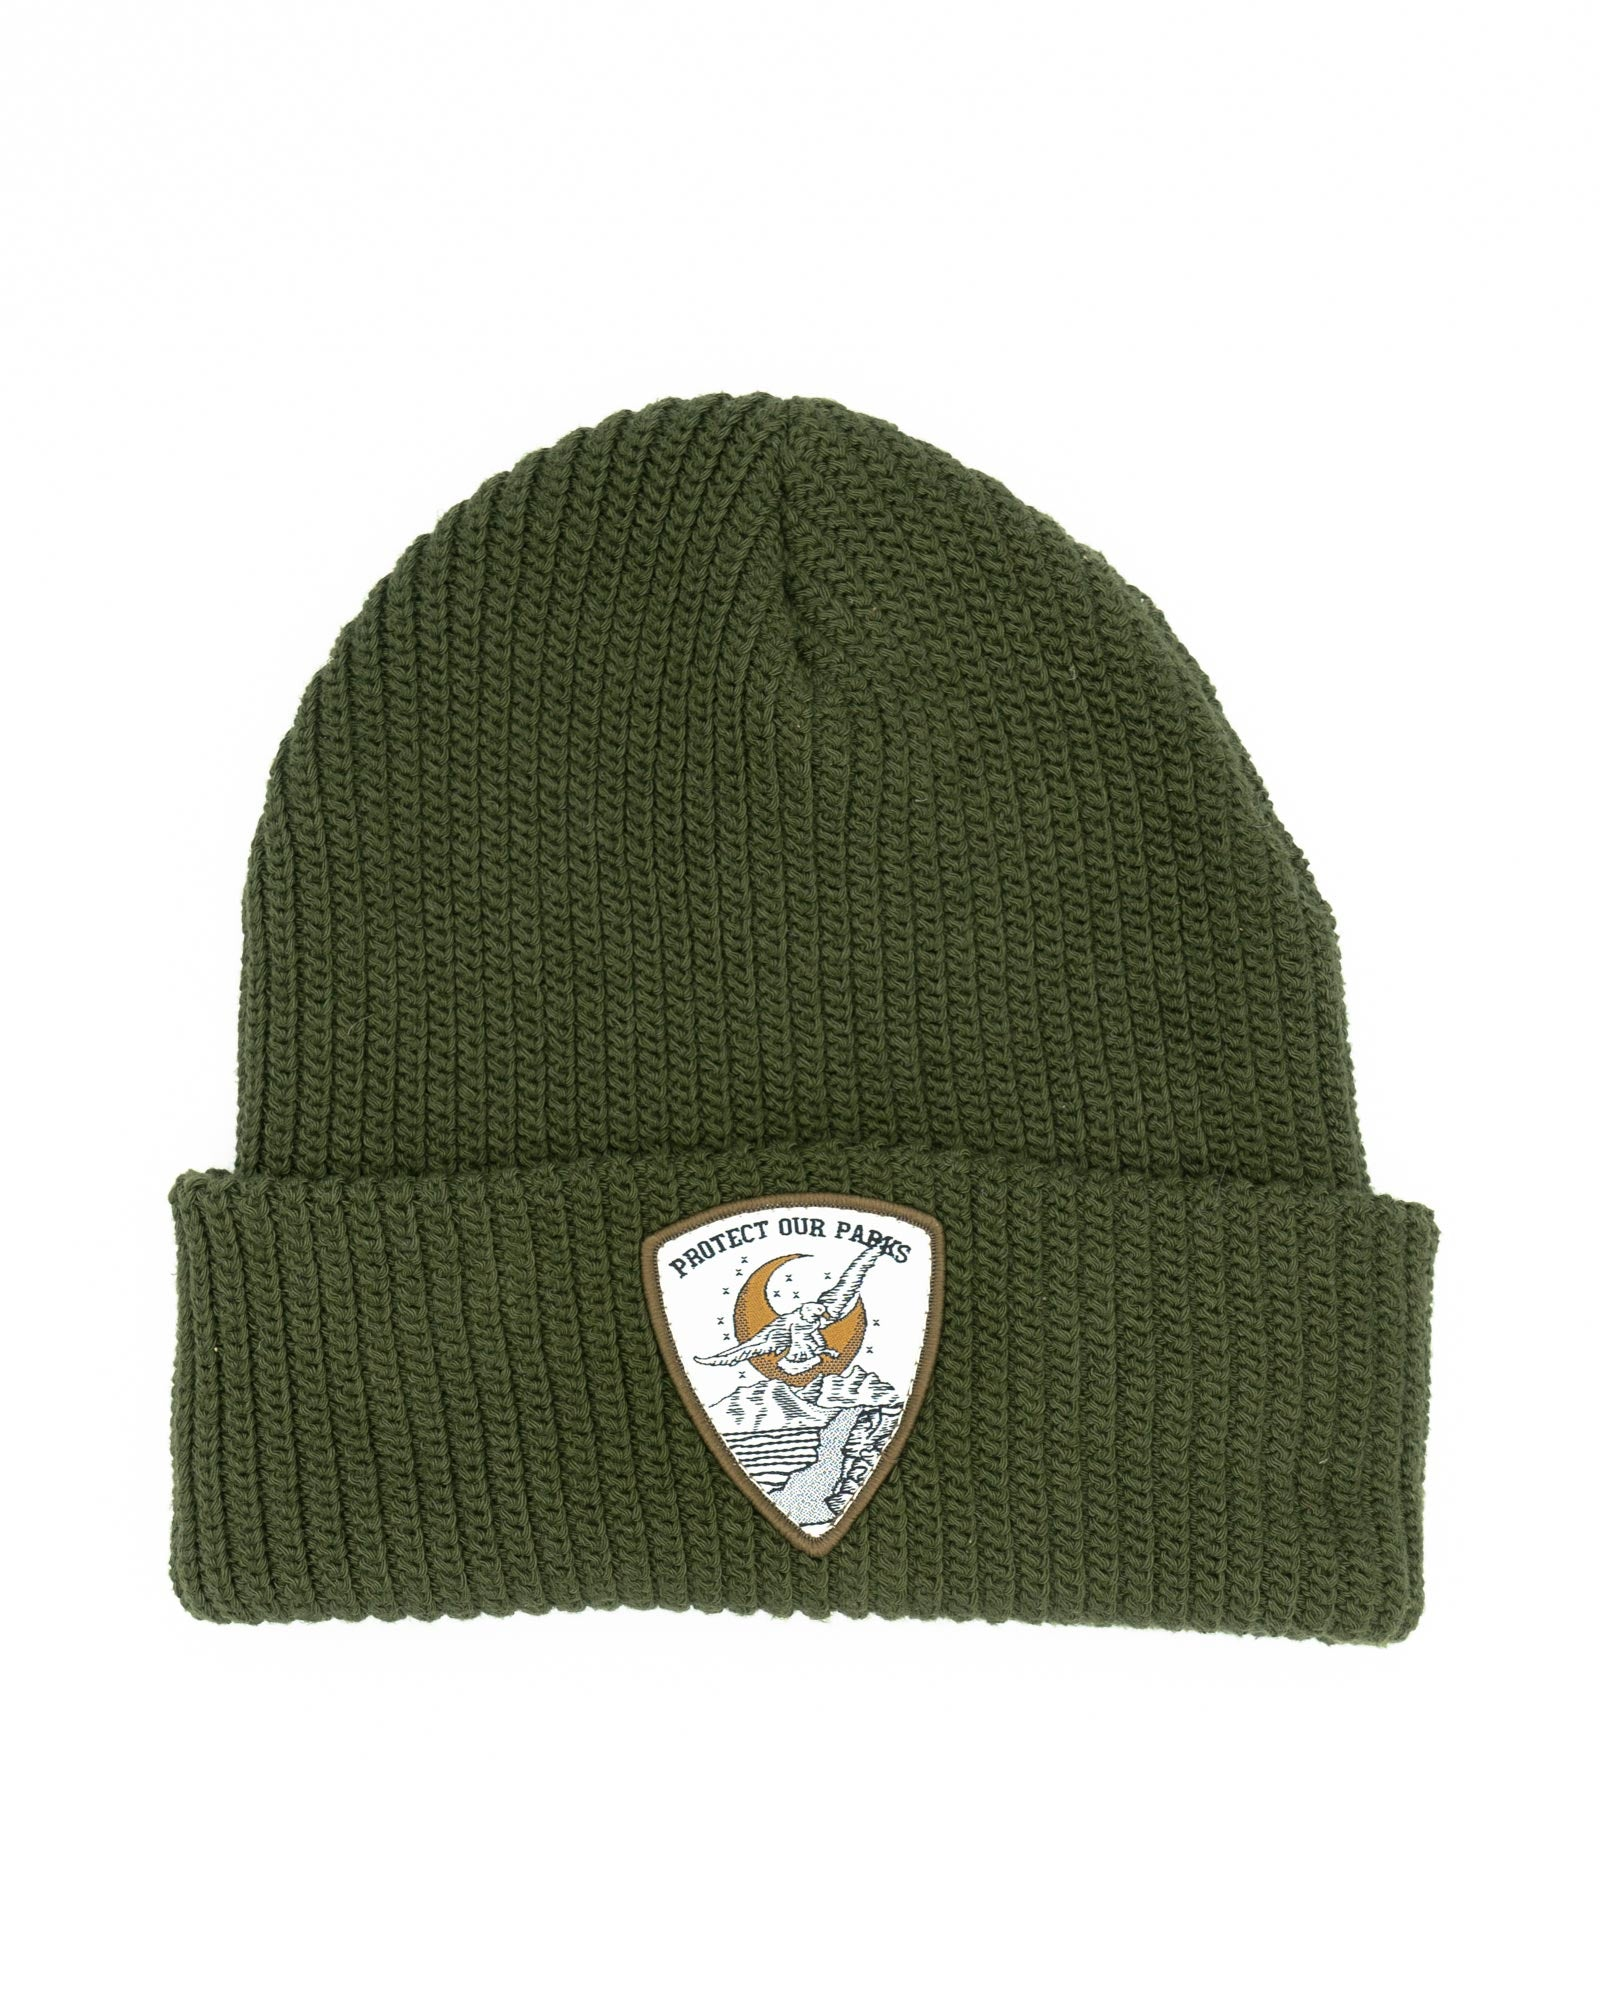 Protect our Parks Patch Beanie | Parks Project | National Park Headwear